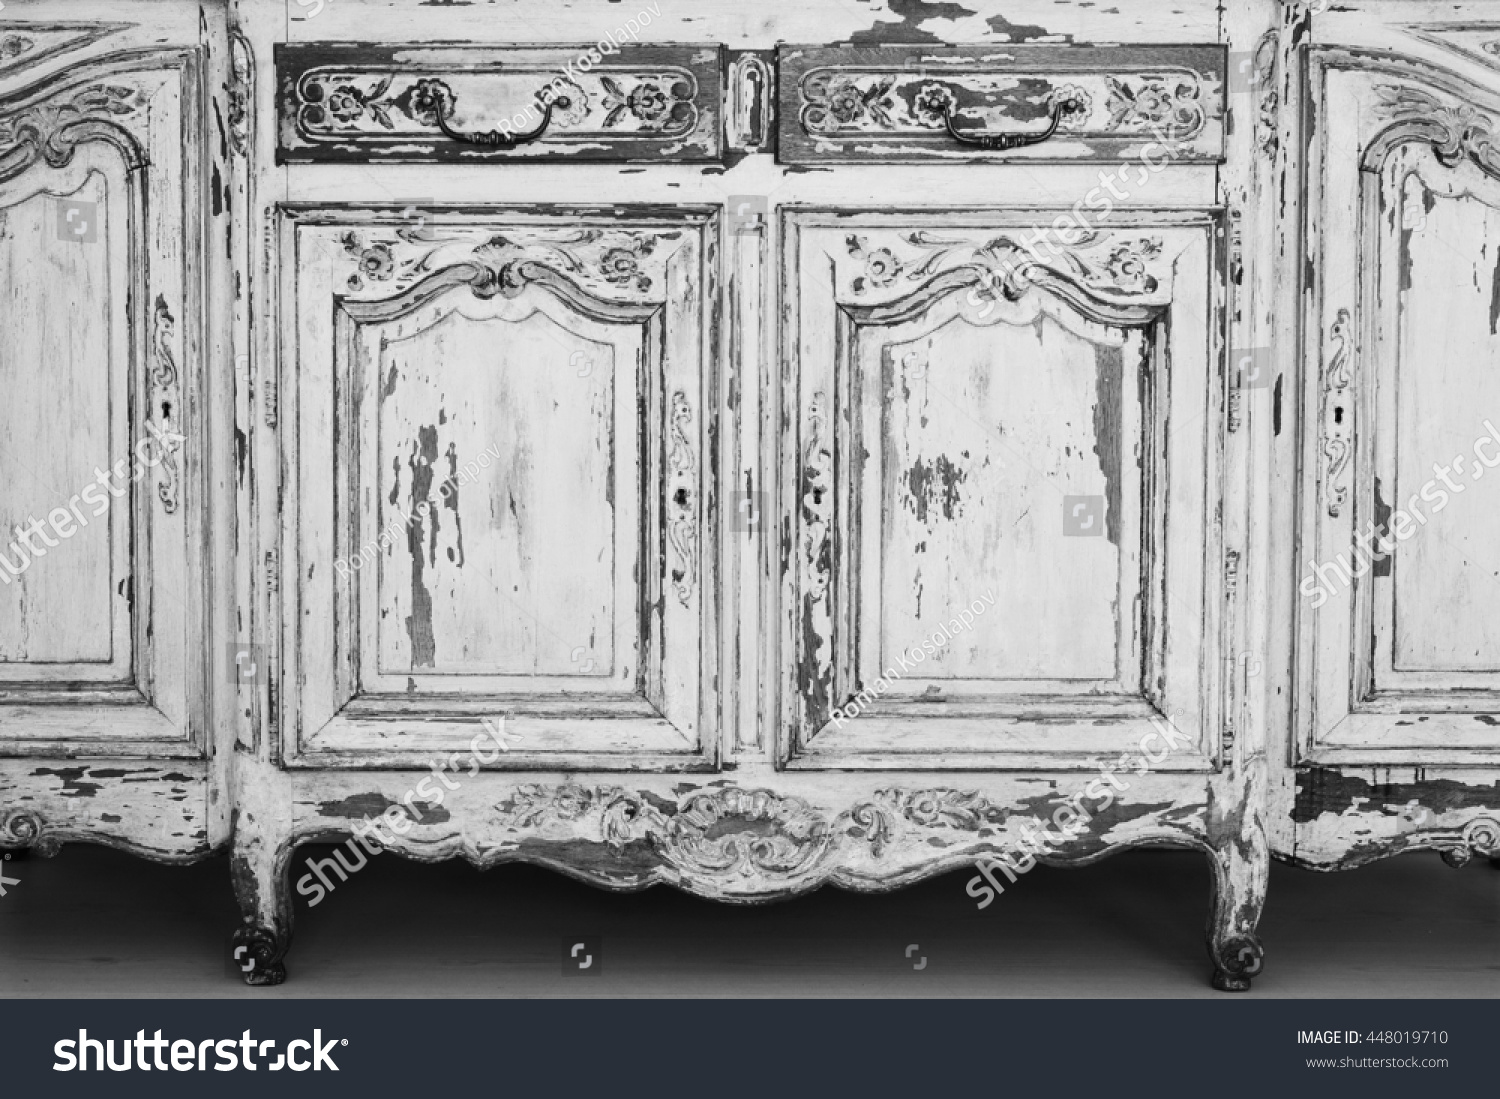 closeup keyhole ancient white commode bureau stock photo 448019710 shutterstock. Black Bedroom Furniture Sets. Home Design Ideas